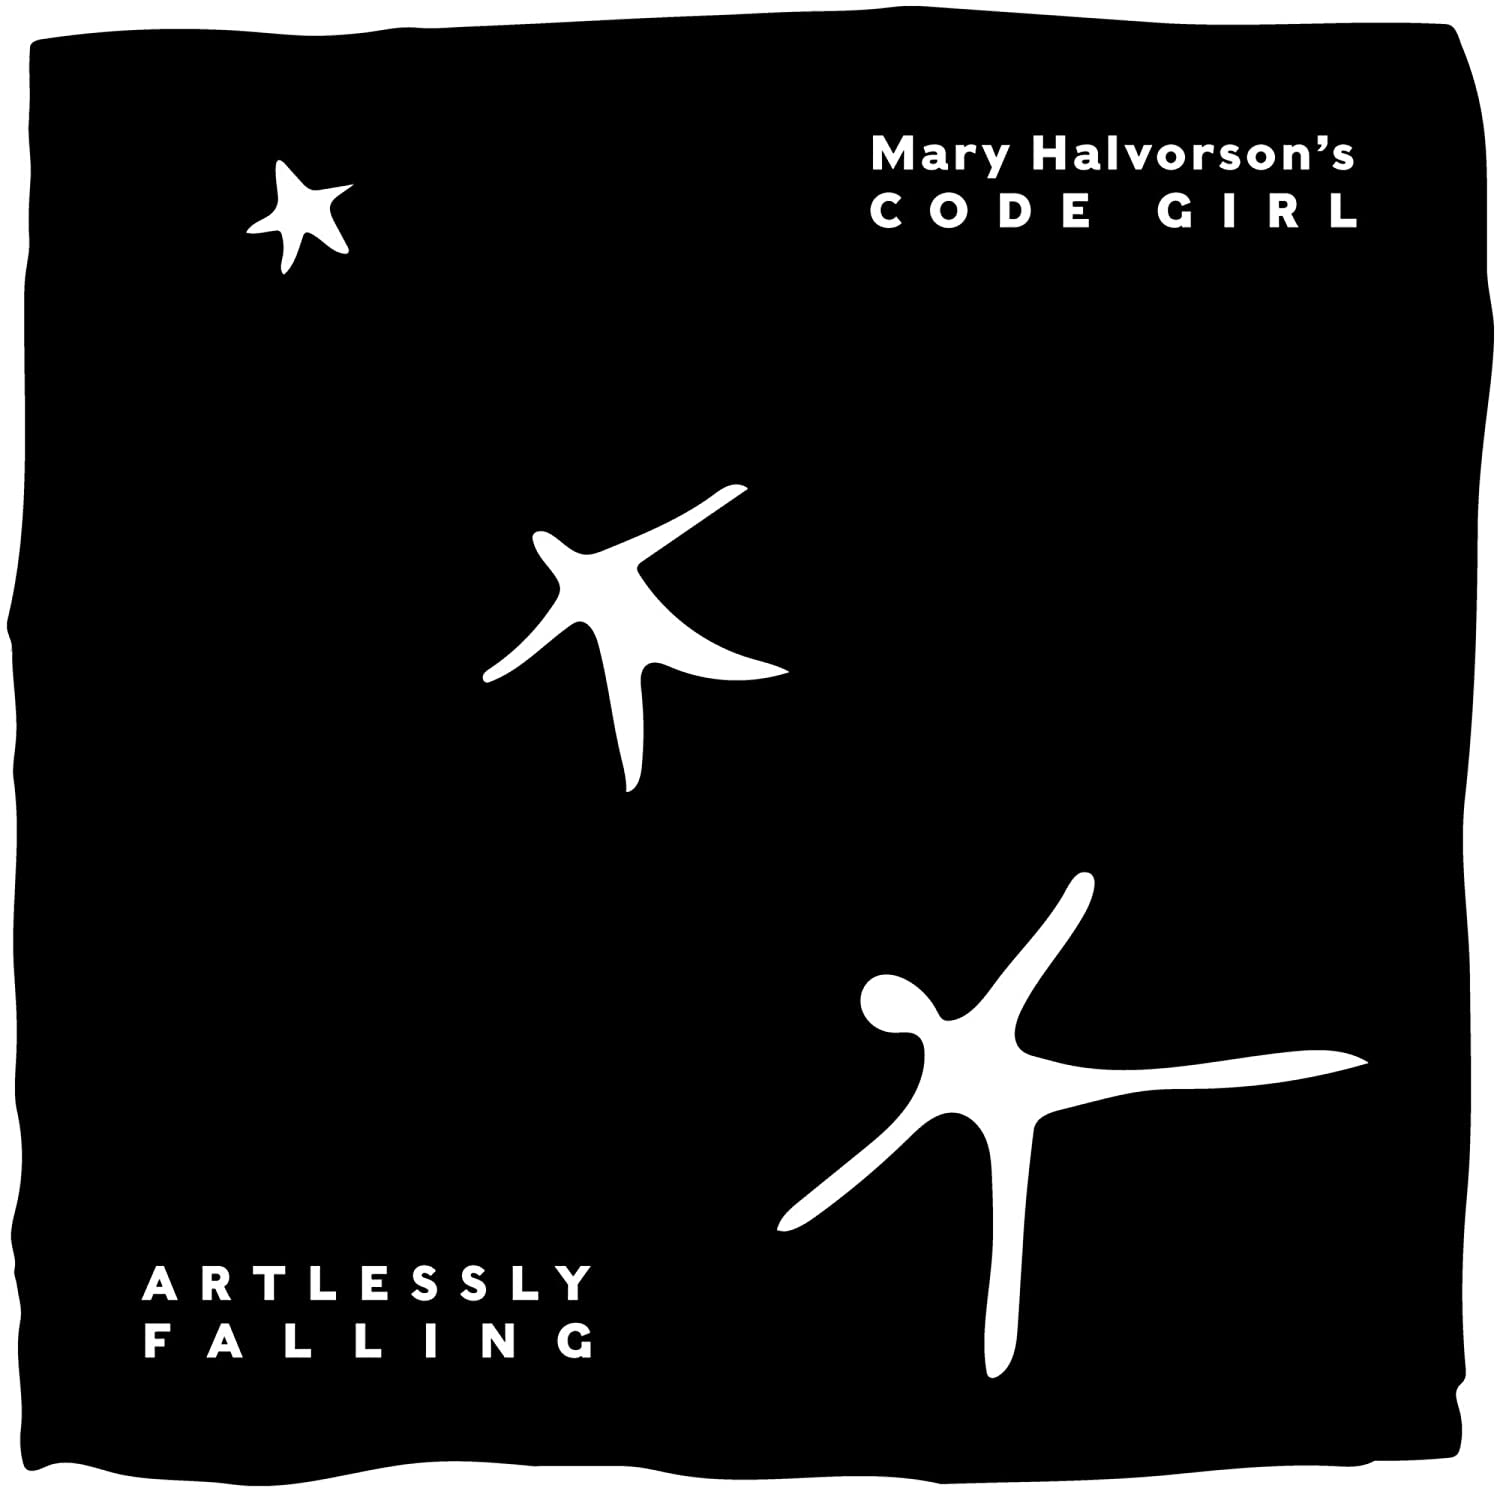 Buy MARY HALVORSON'S CODE GIRL - ARTLESSLY FALLING. New or Used via Amazon